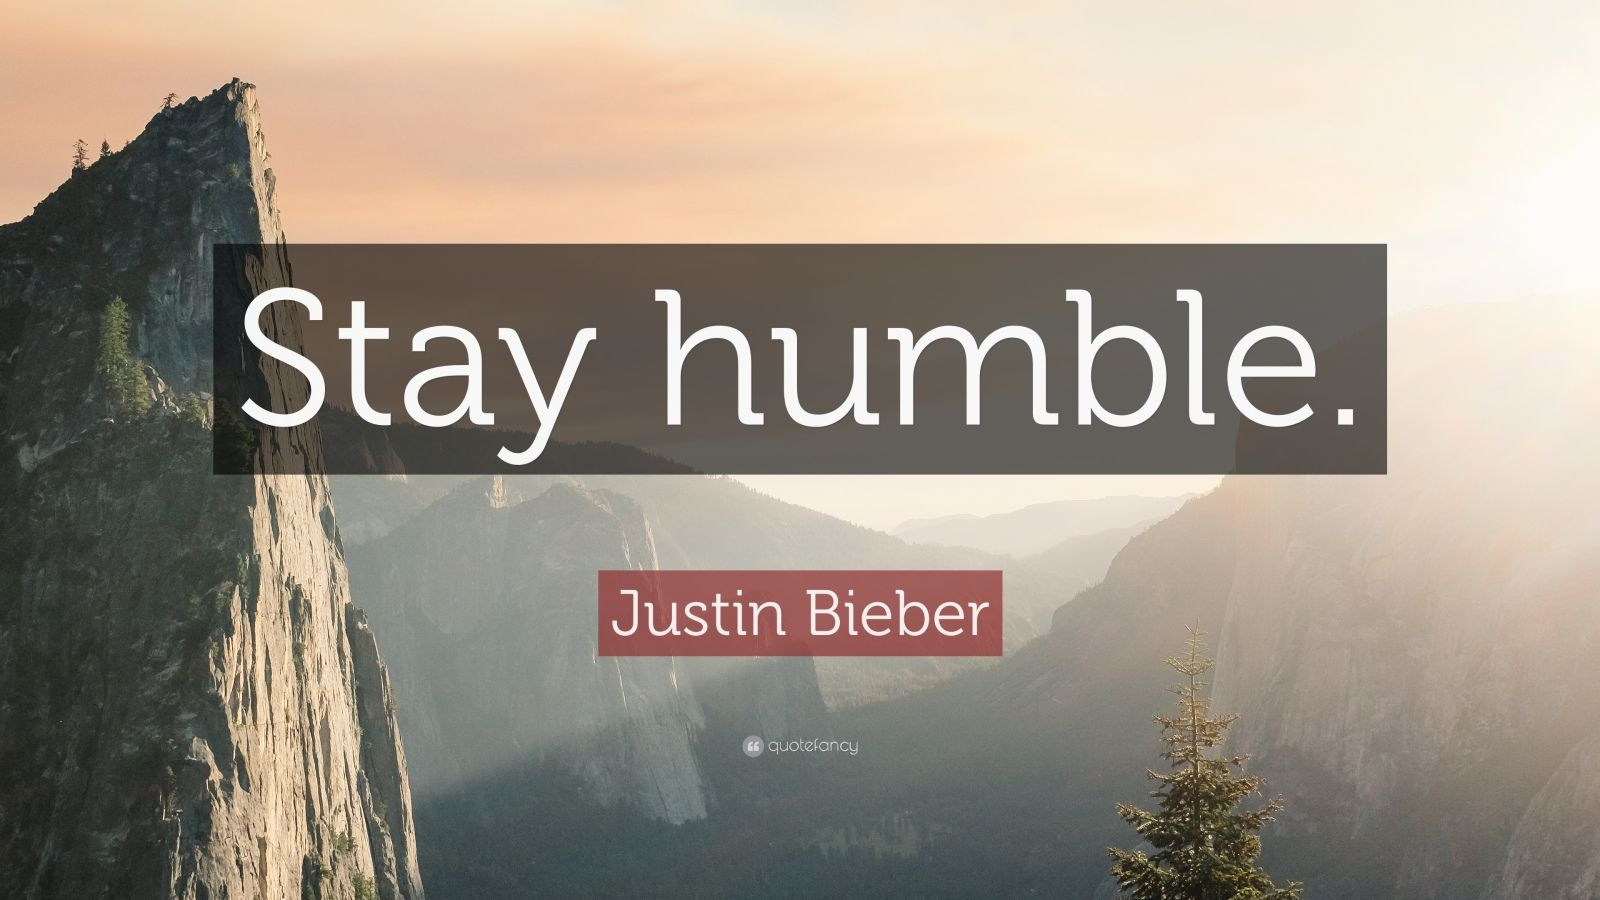 Justin bieber quote stay humble 12 wallpapers - Stay humble wallpaper ...